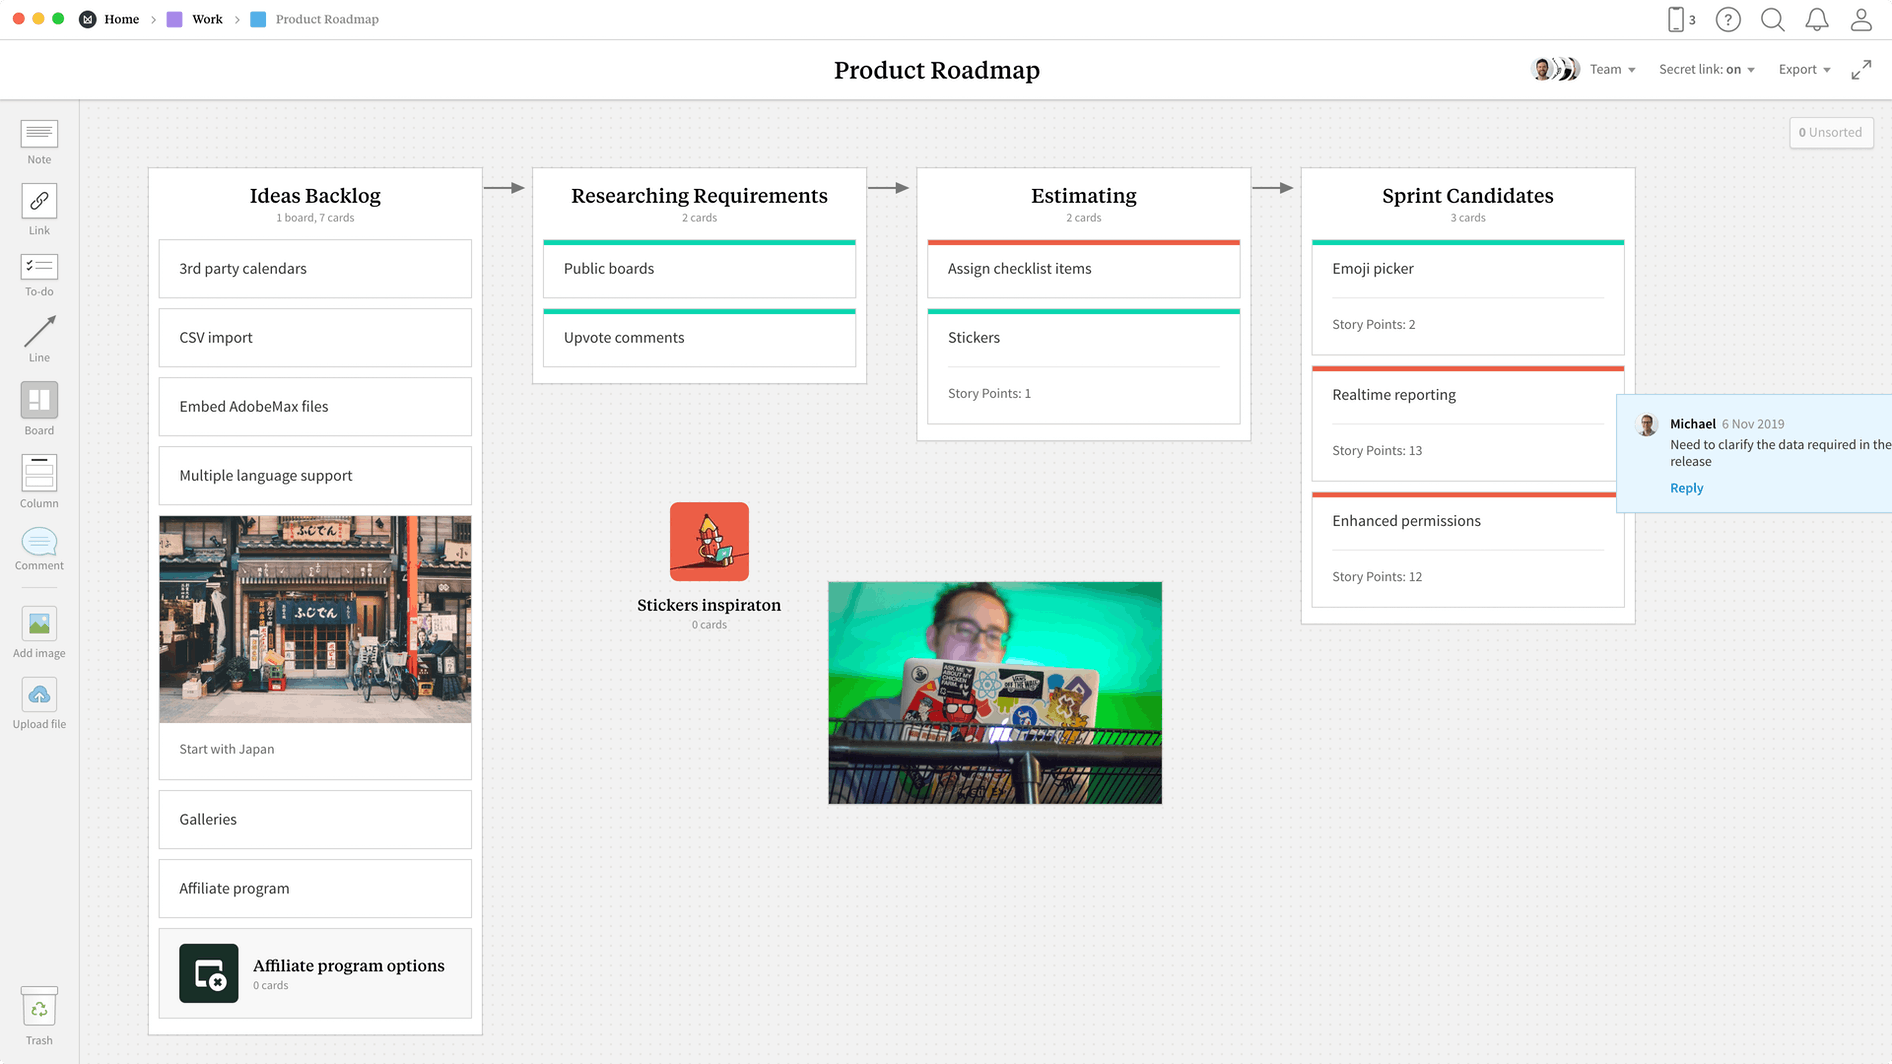 Product Roadmap Template, within the Milanote app